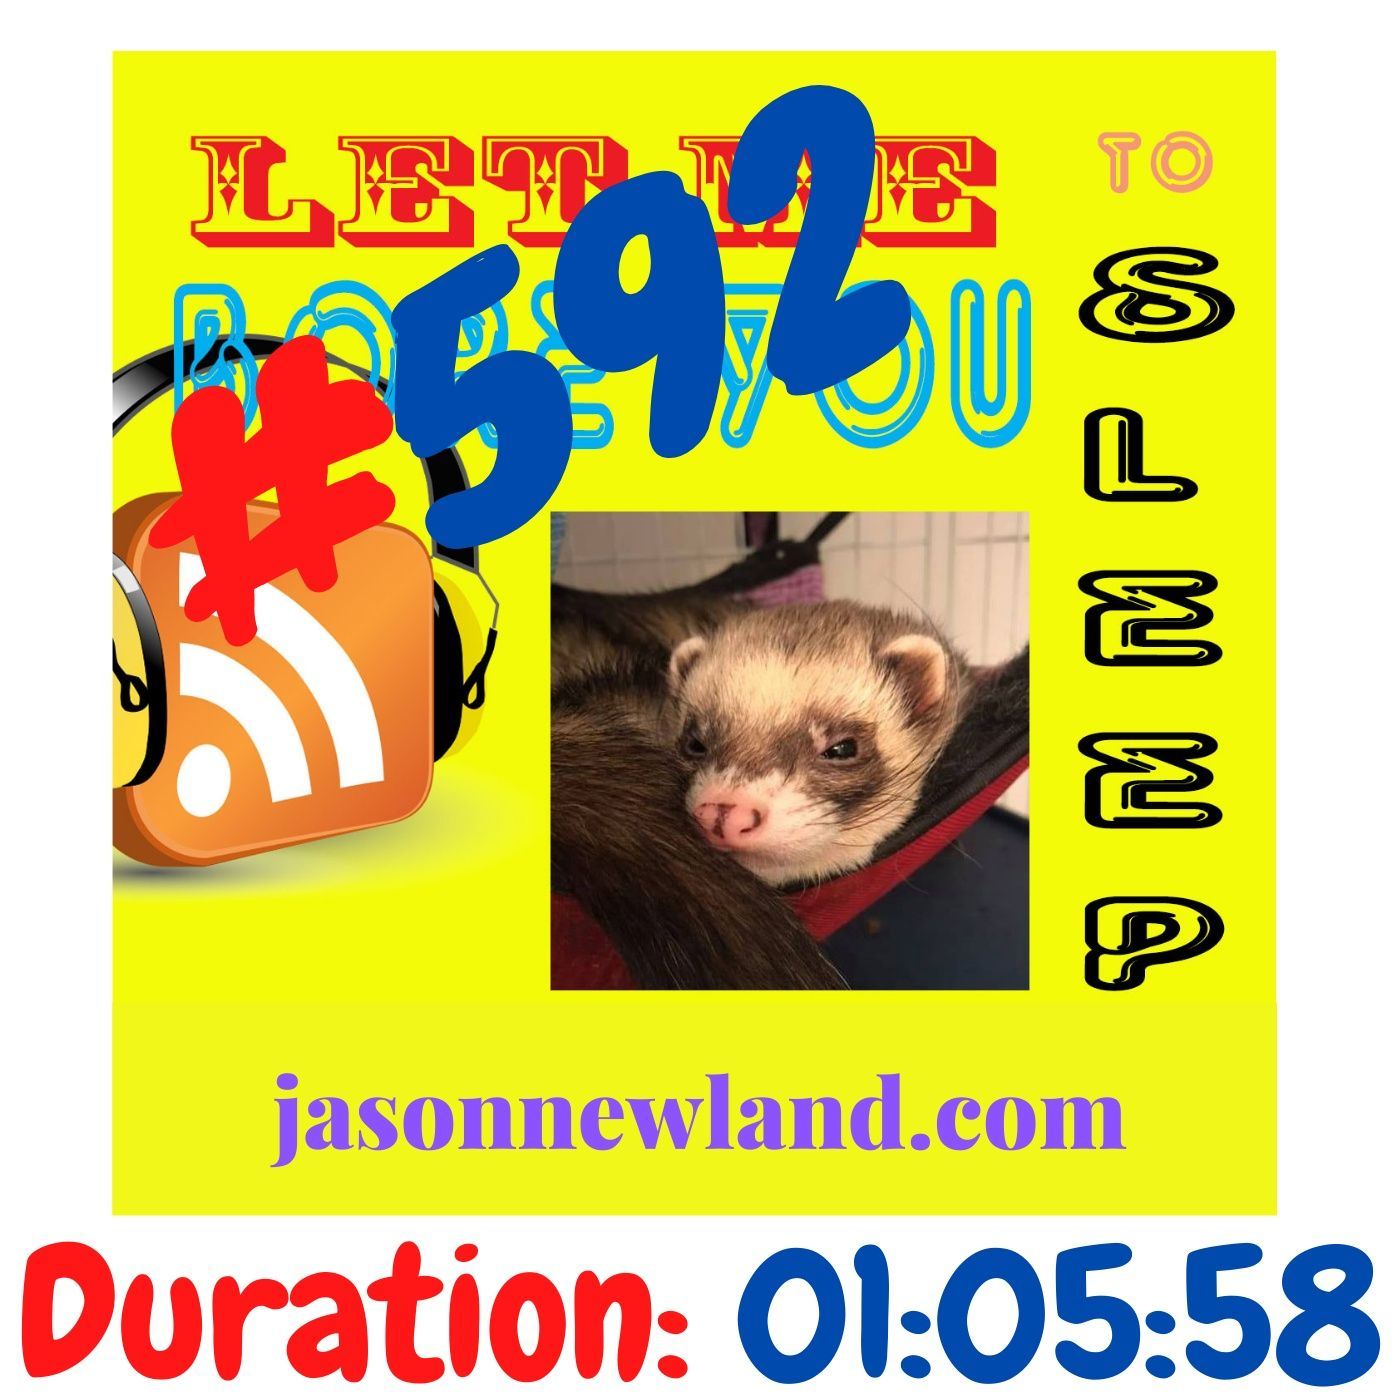 "#592 Let me bore you to sleep ""JASON'S RELAXING RADIO SHOW"" - Jason Newland (7th February 2021)"